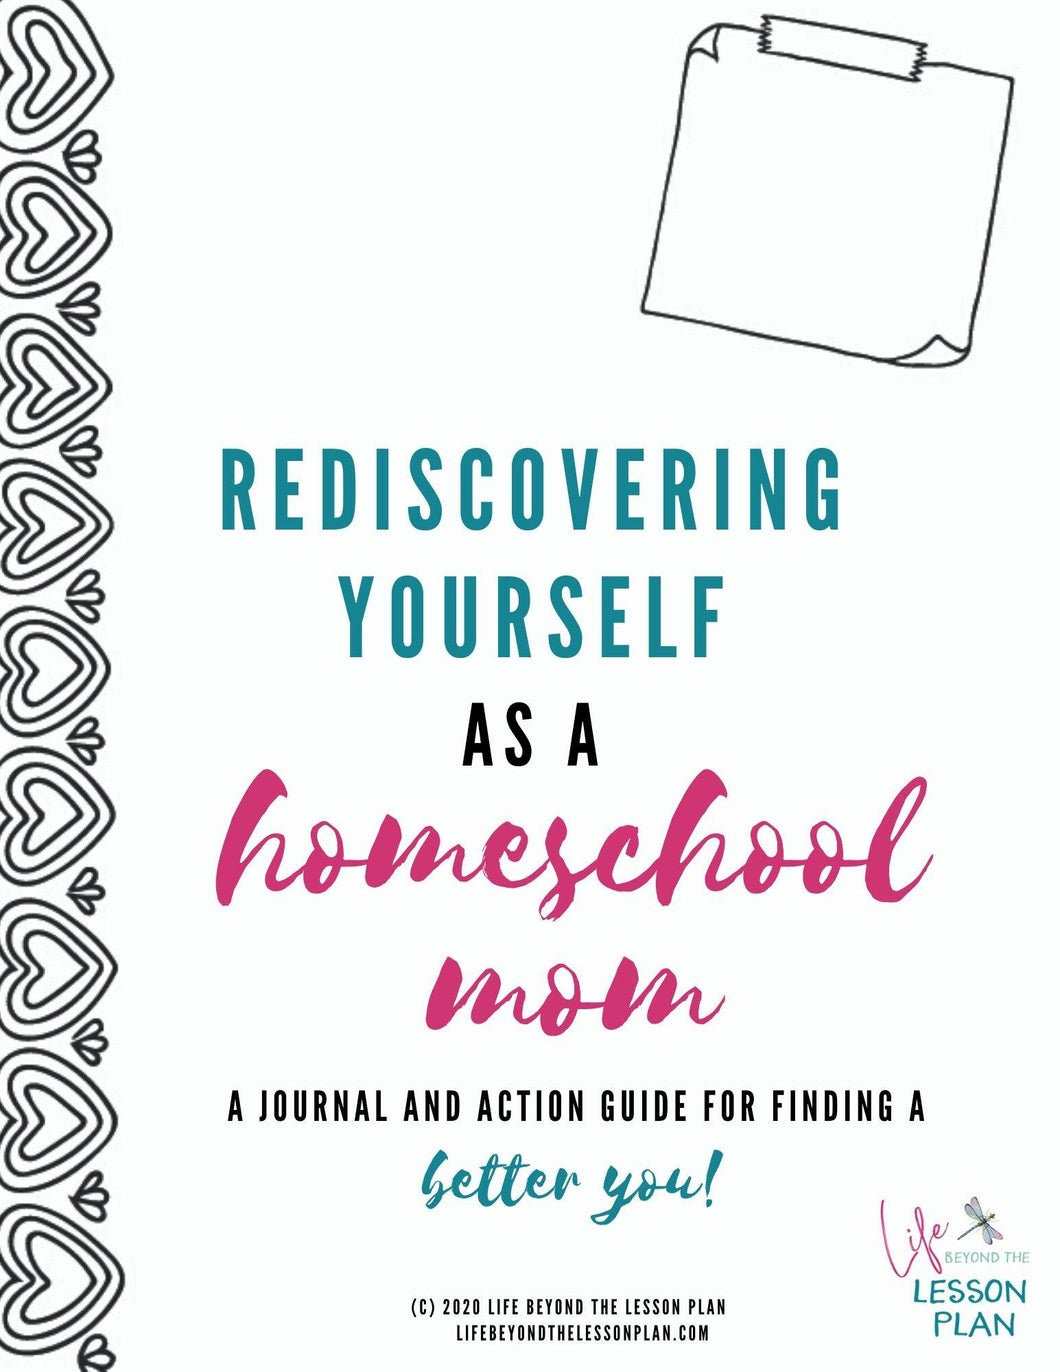 Rediscovering Yourself as a Homeschool Mom Journal